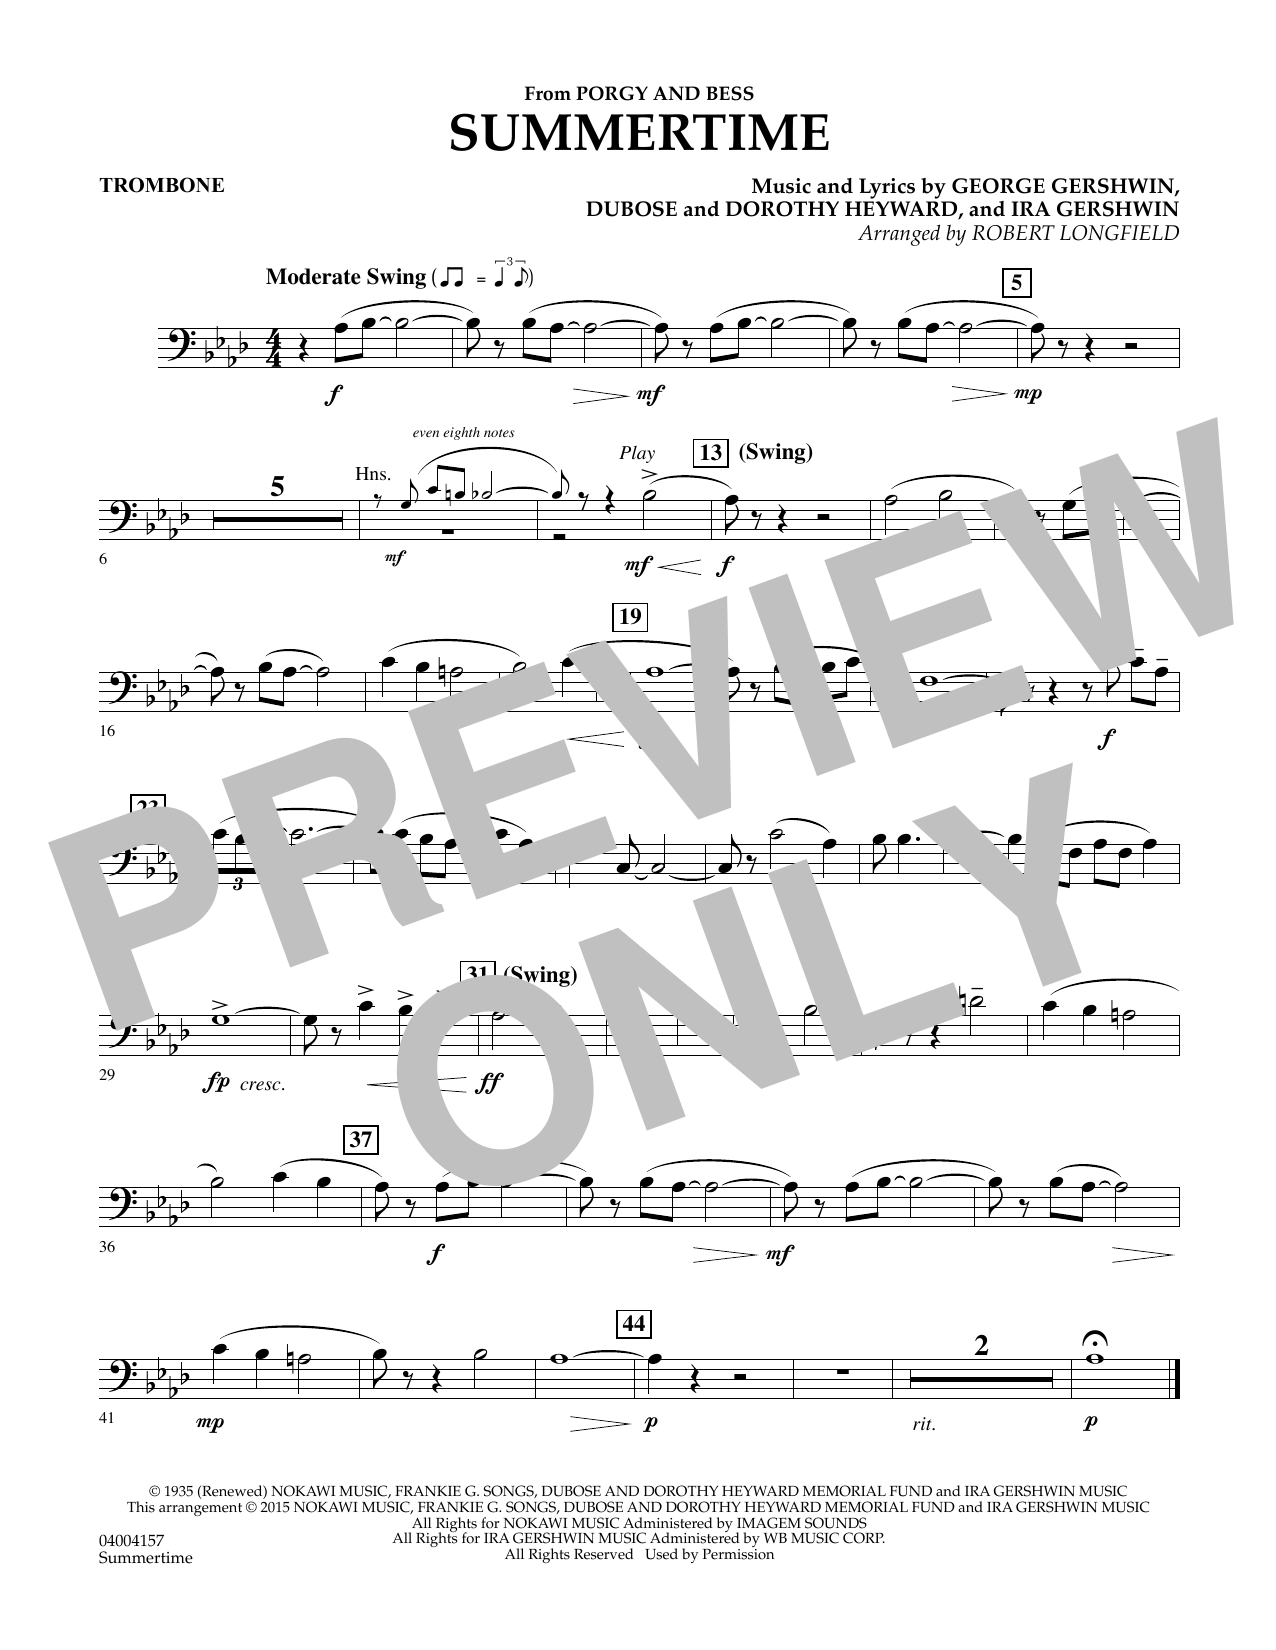 Summertime (from Porgy and Bess) - Trombone (Concert Band)